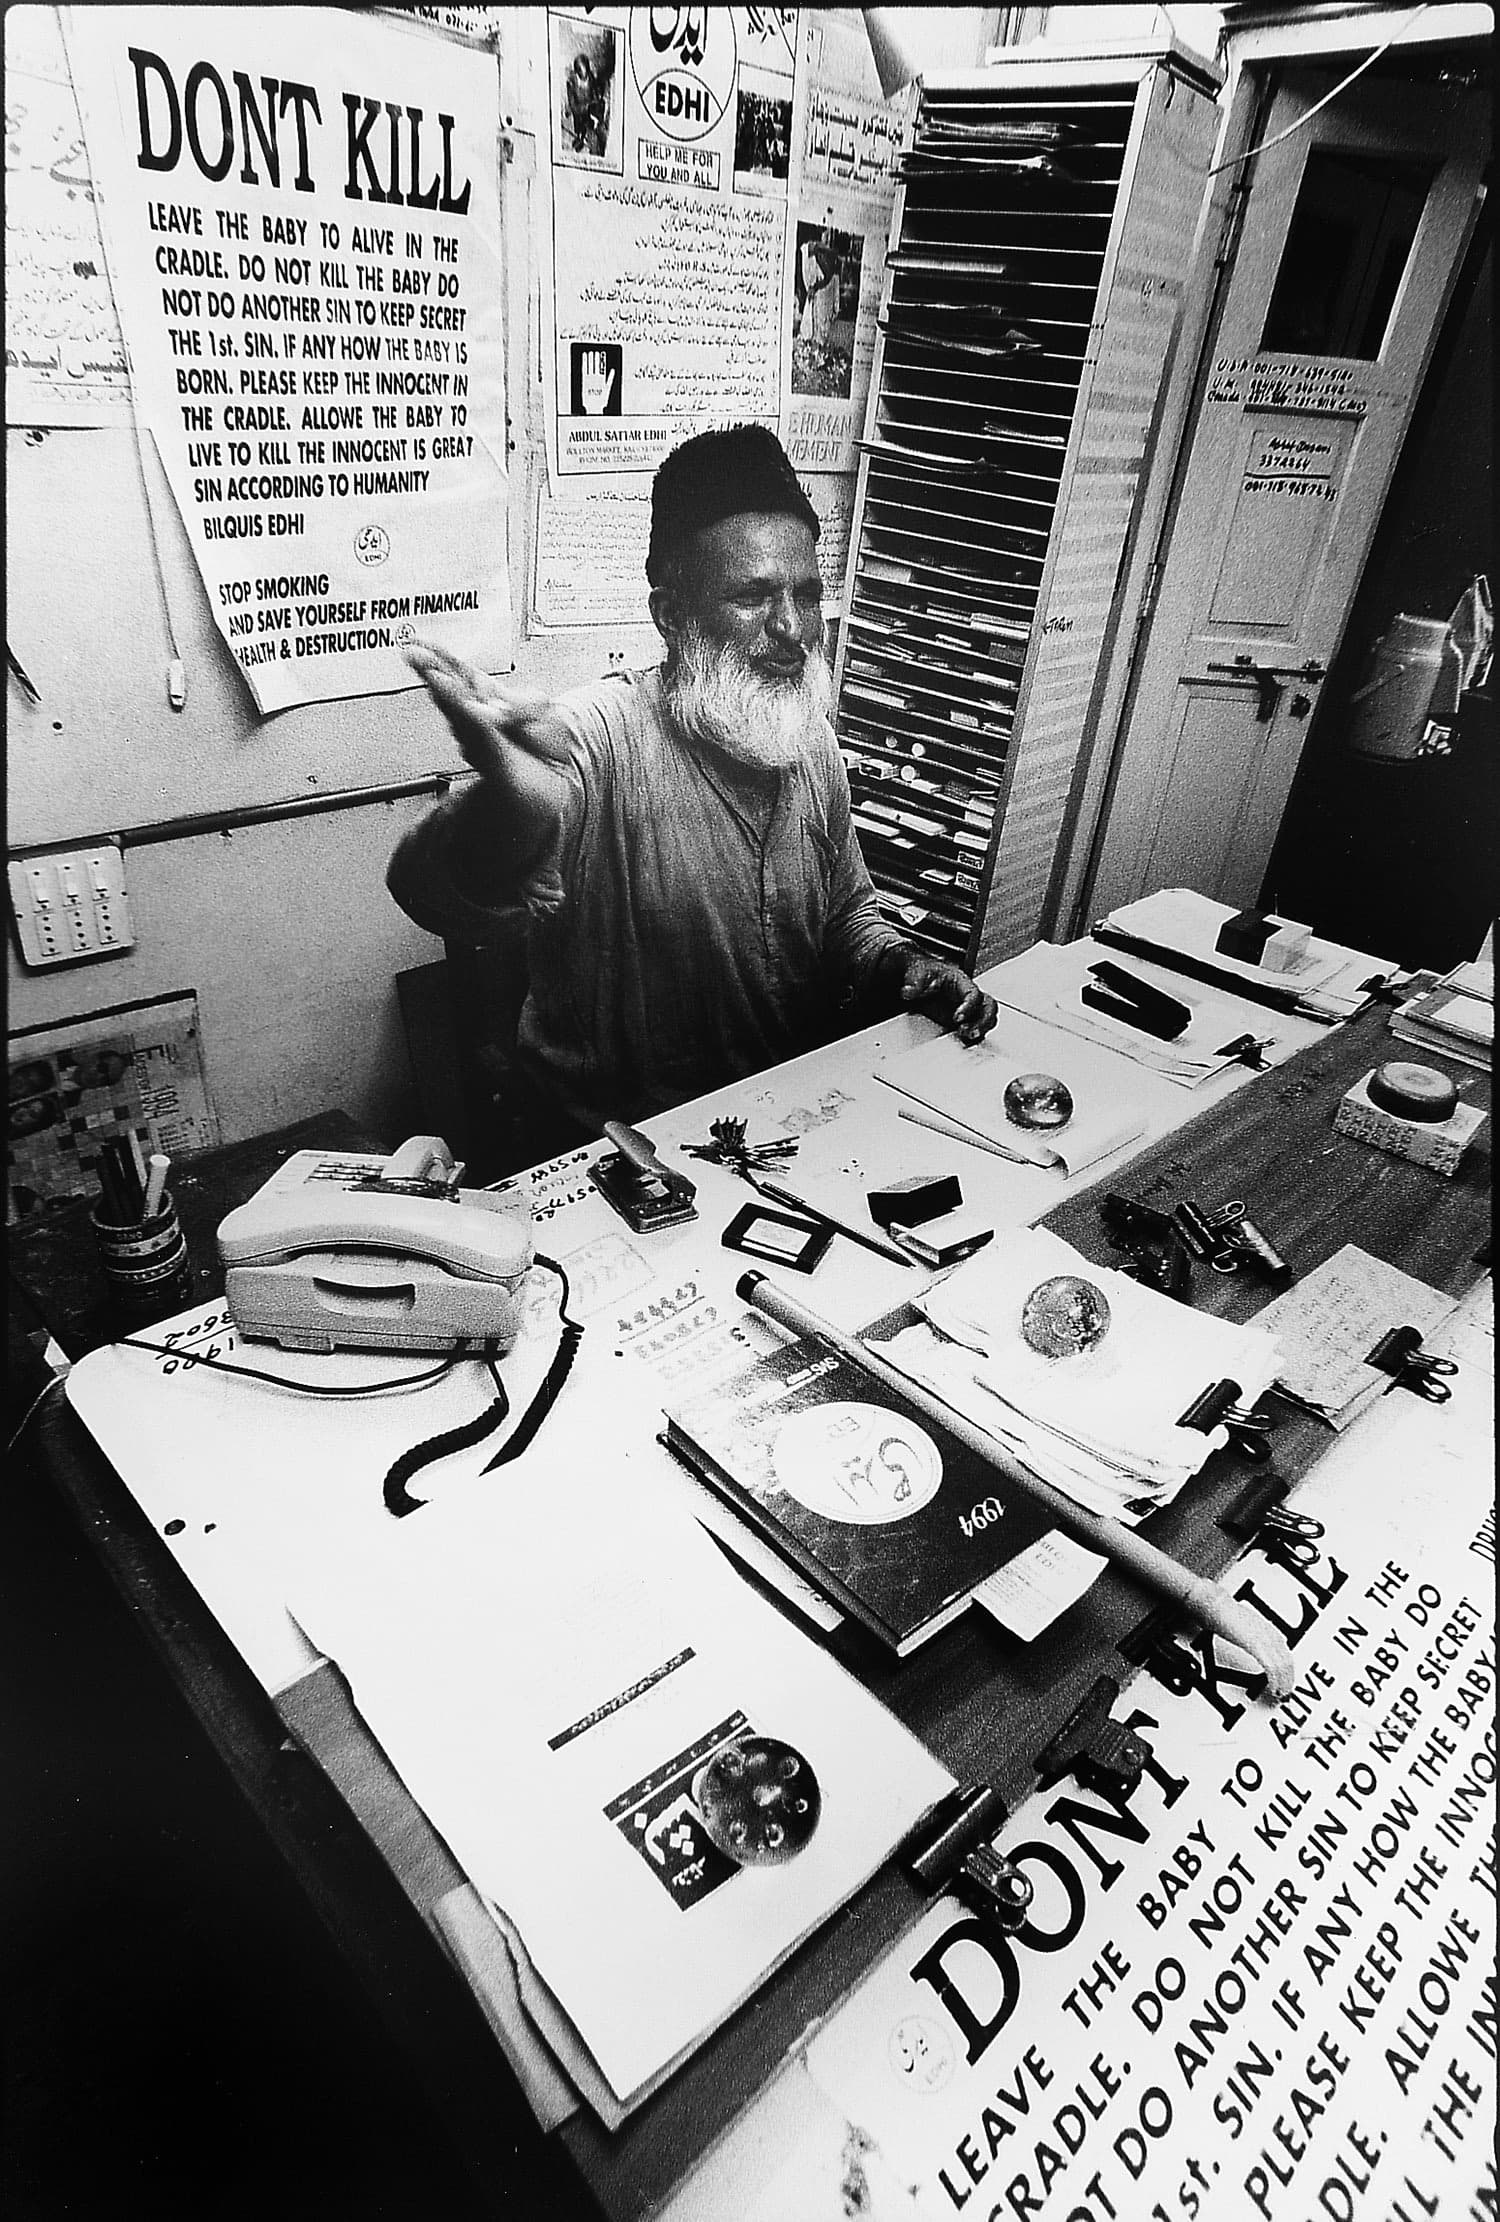 Abdul Sattar Edhi at his office in Mithadar. —Photo by Arif Mahmood/White Star